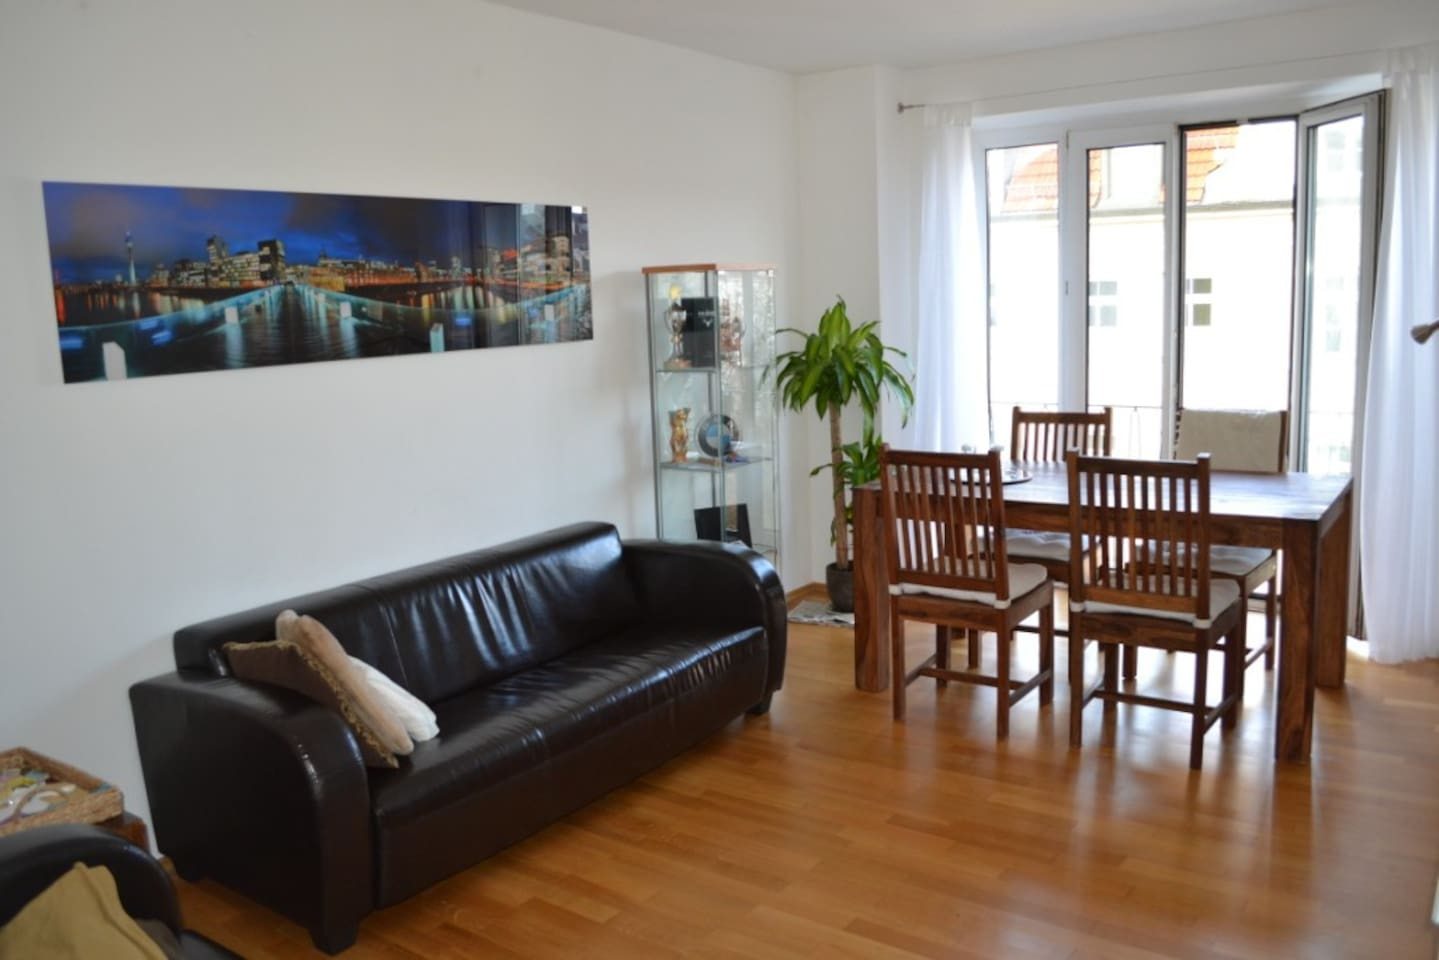 Sunny living room with window front / french balcony facing Herzogstr and its beautiful neighbouring buildings.